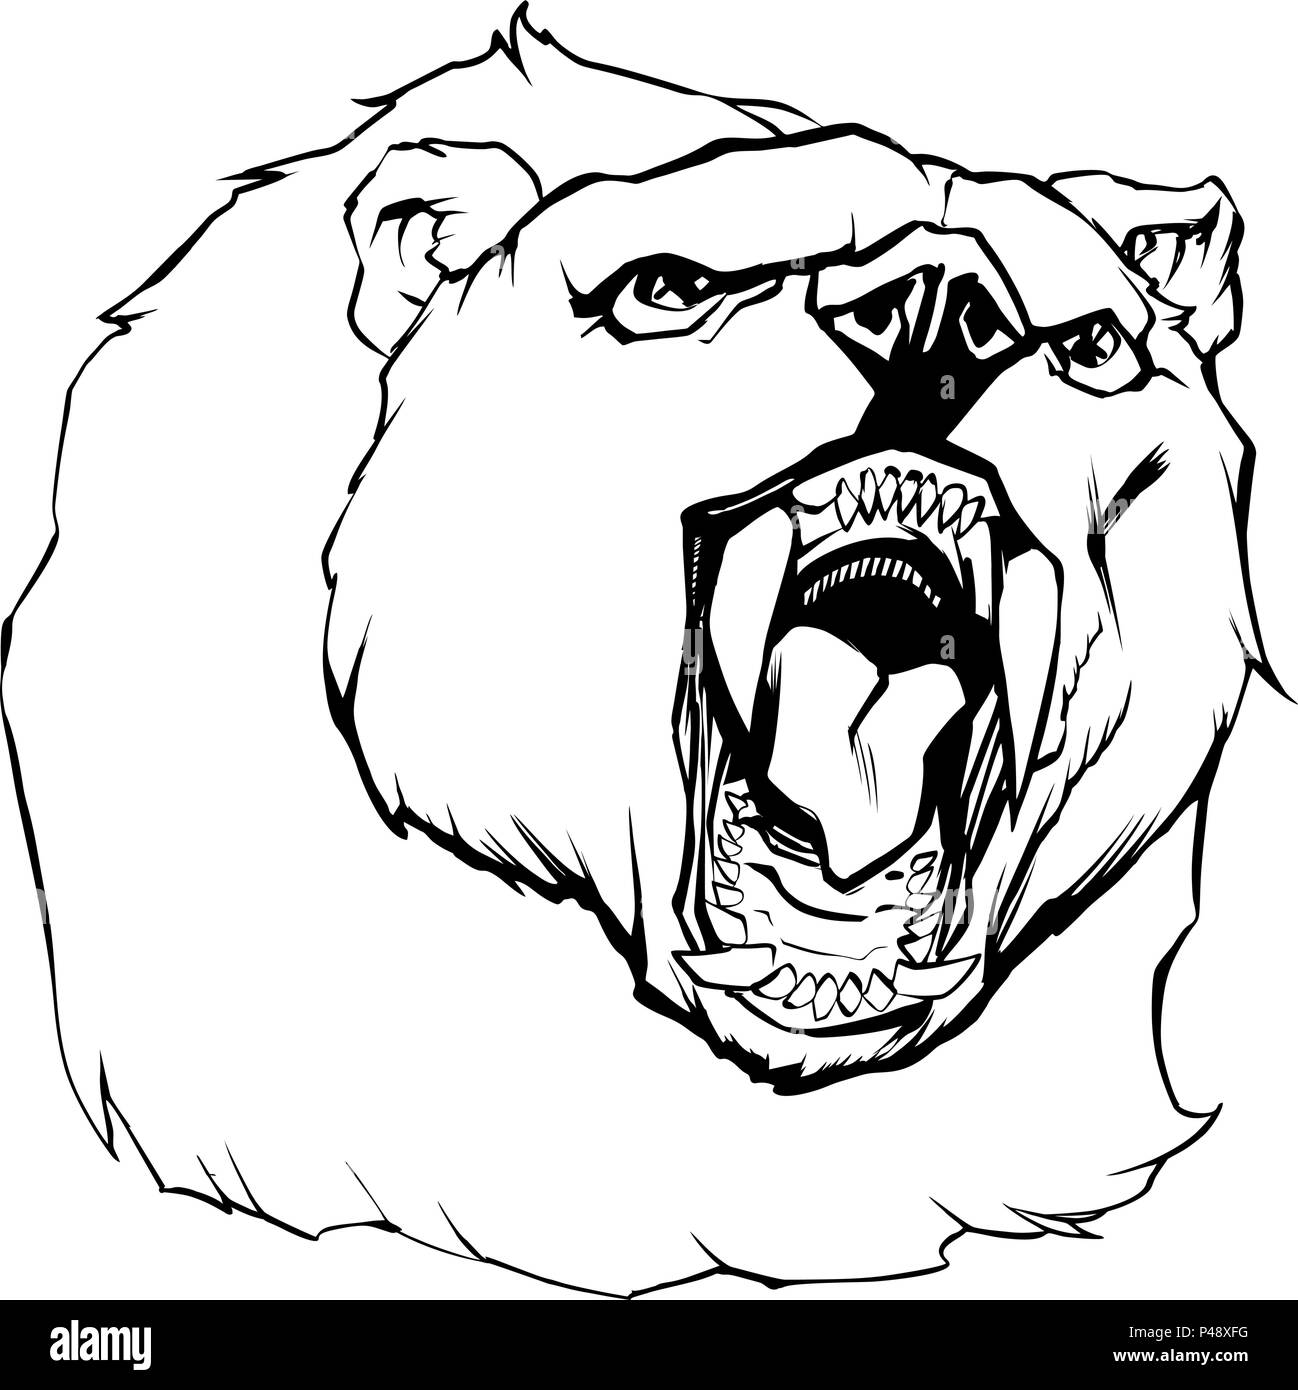 Bear Head Illustration - Stock Vector